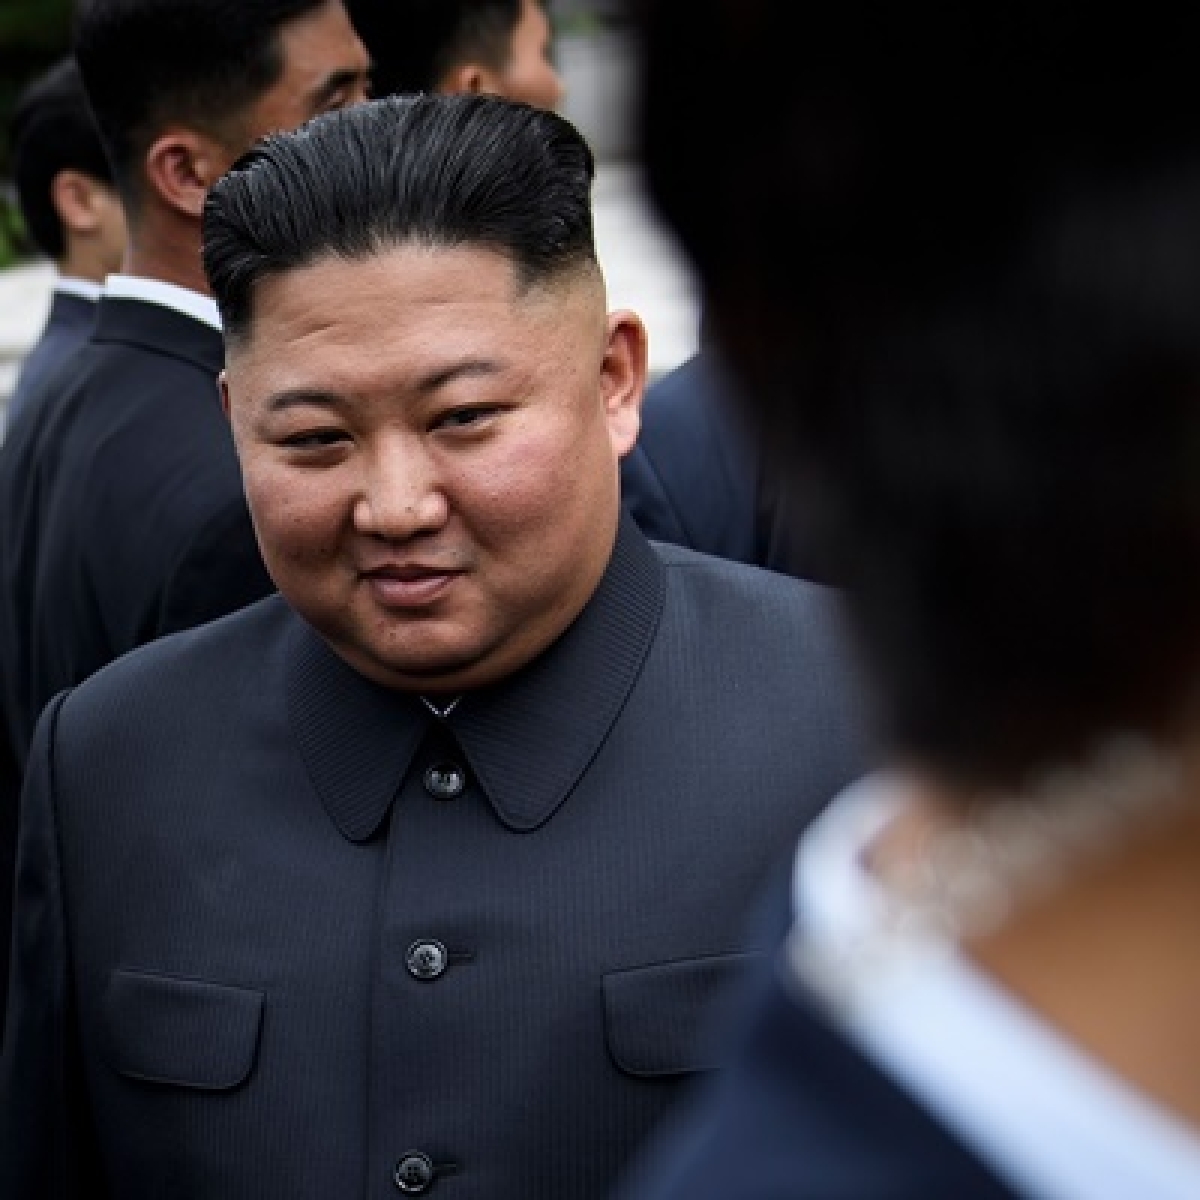 Amid reports of his death, North Korea's Kim Jong-un makes first public appearance in 20 days